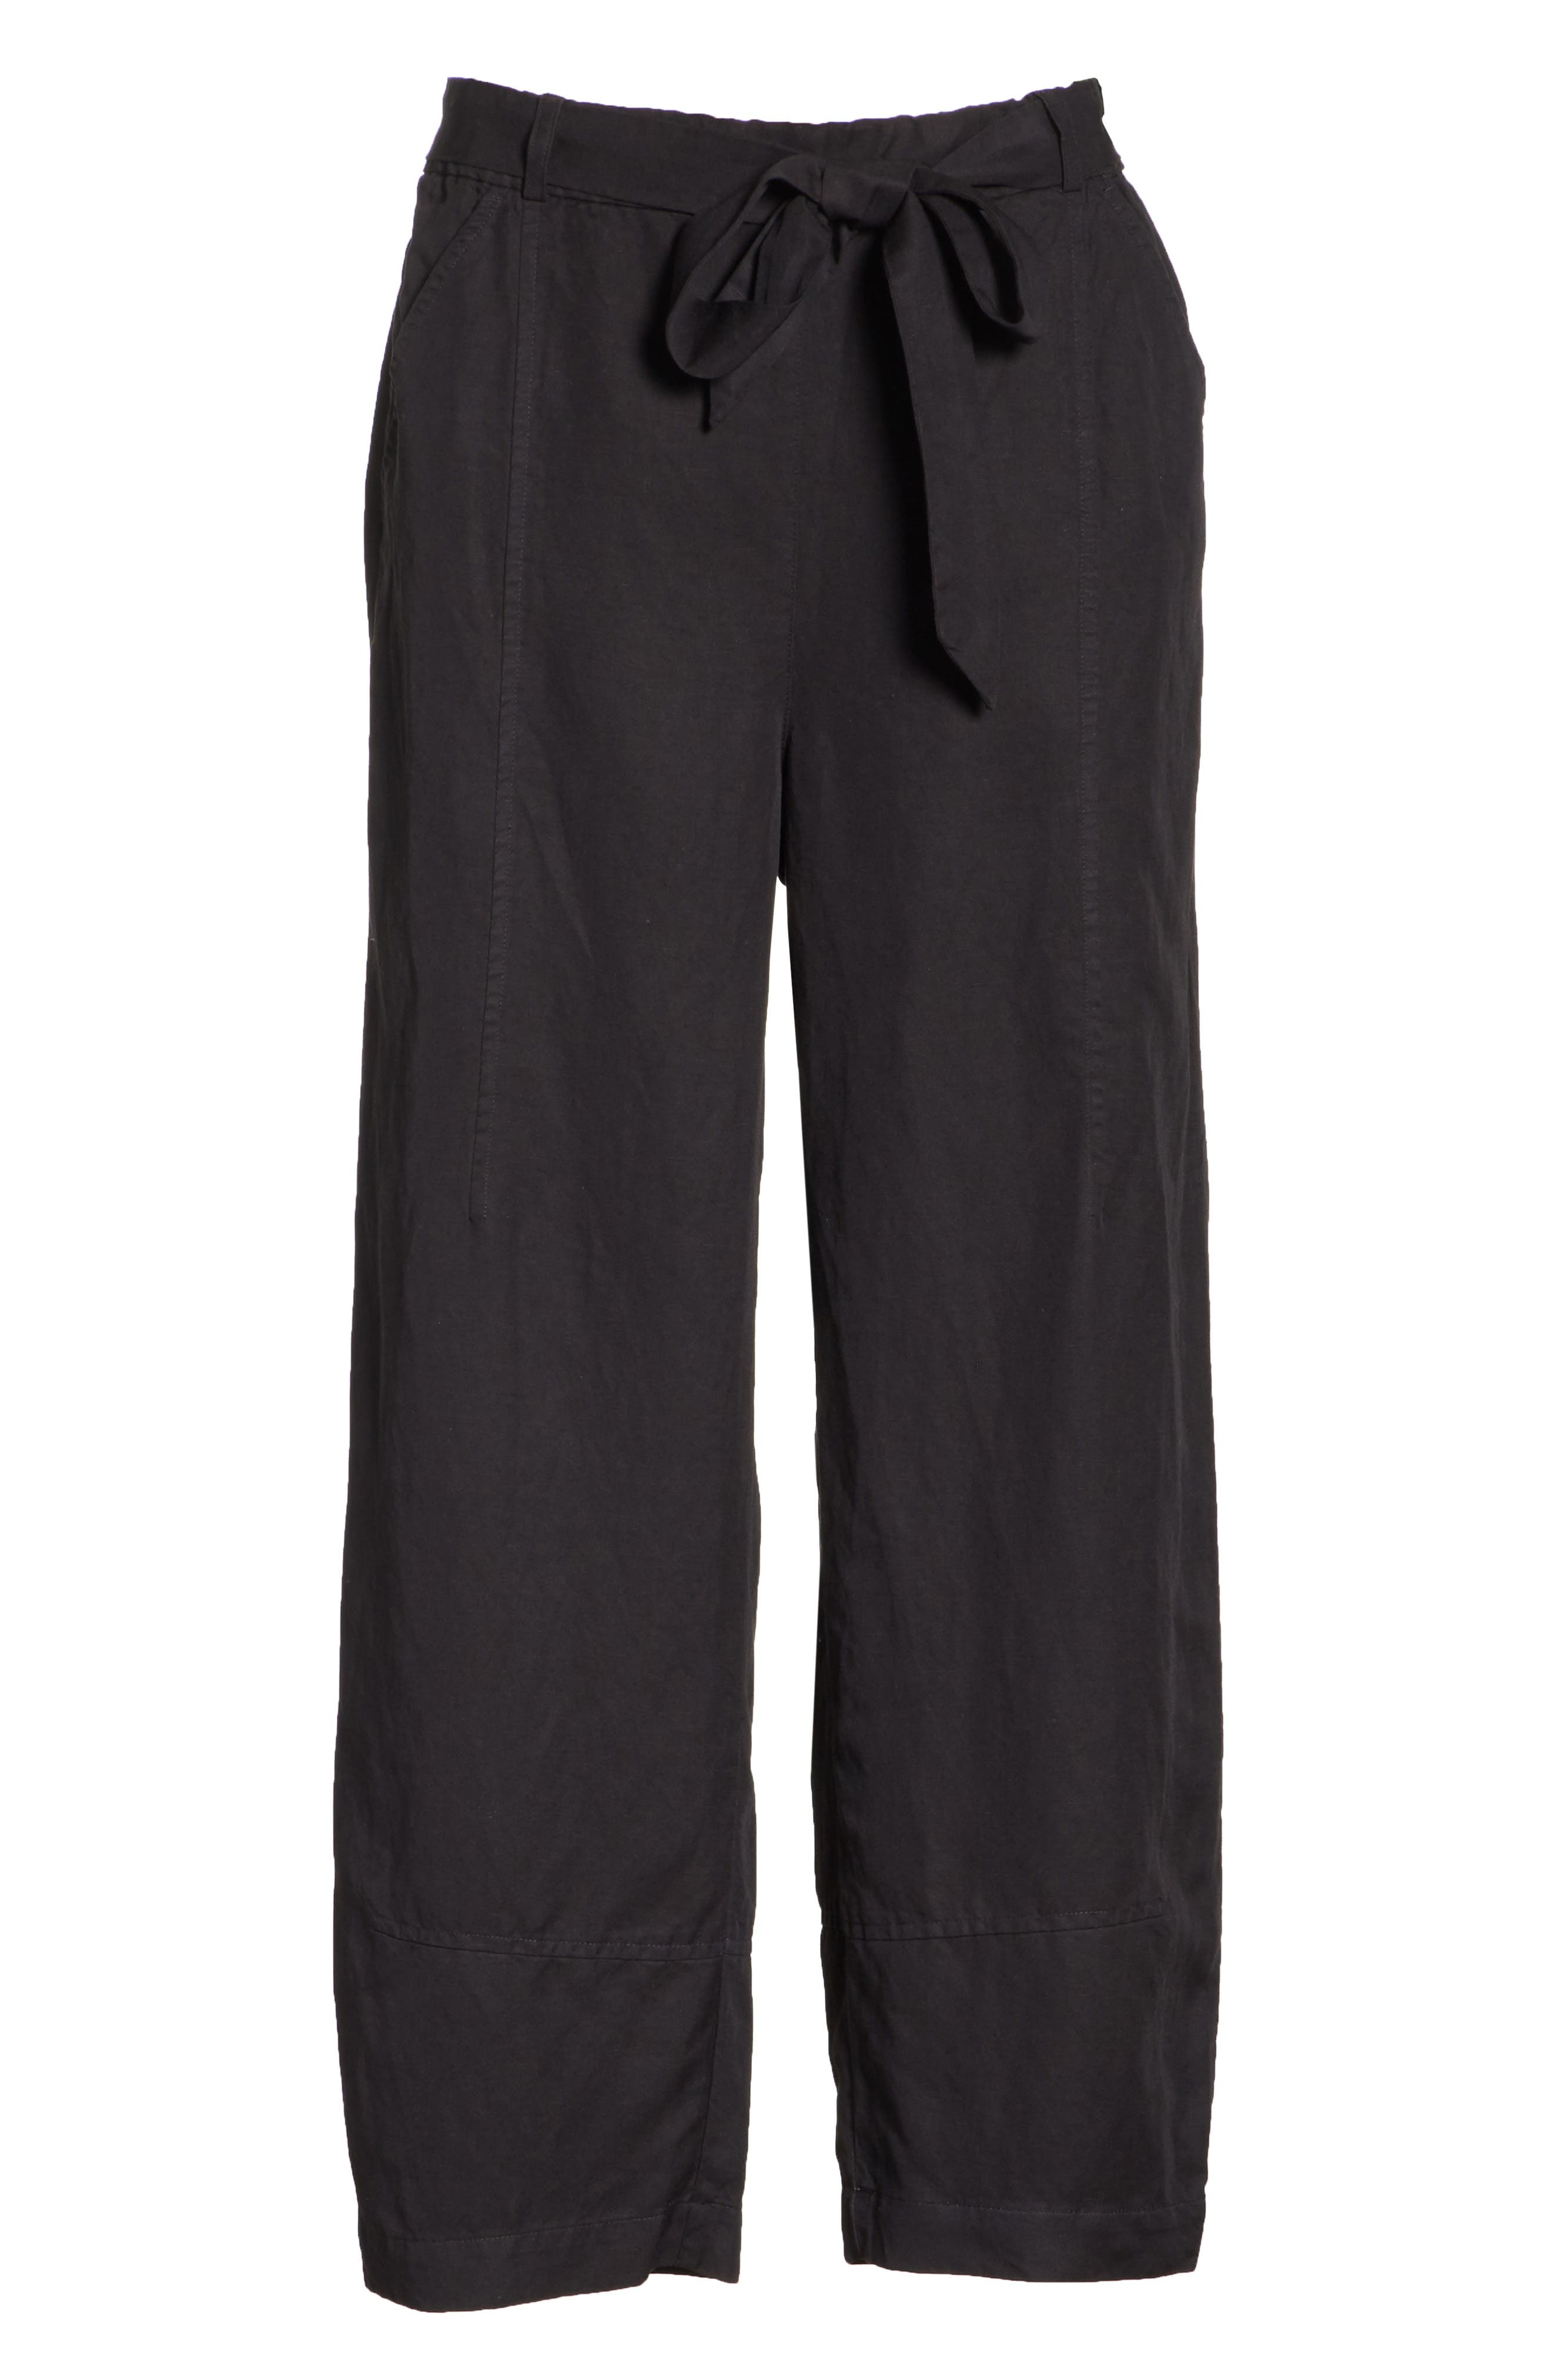 EILEEN FISHER, Lantern Twill Ankle Pants, Alternate thumbnail 7, color, 001